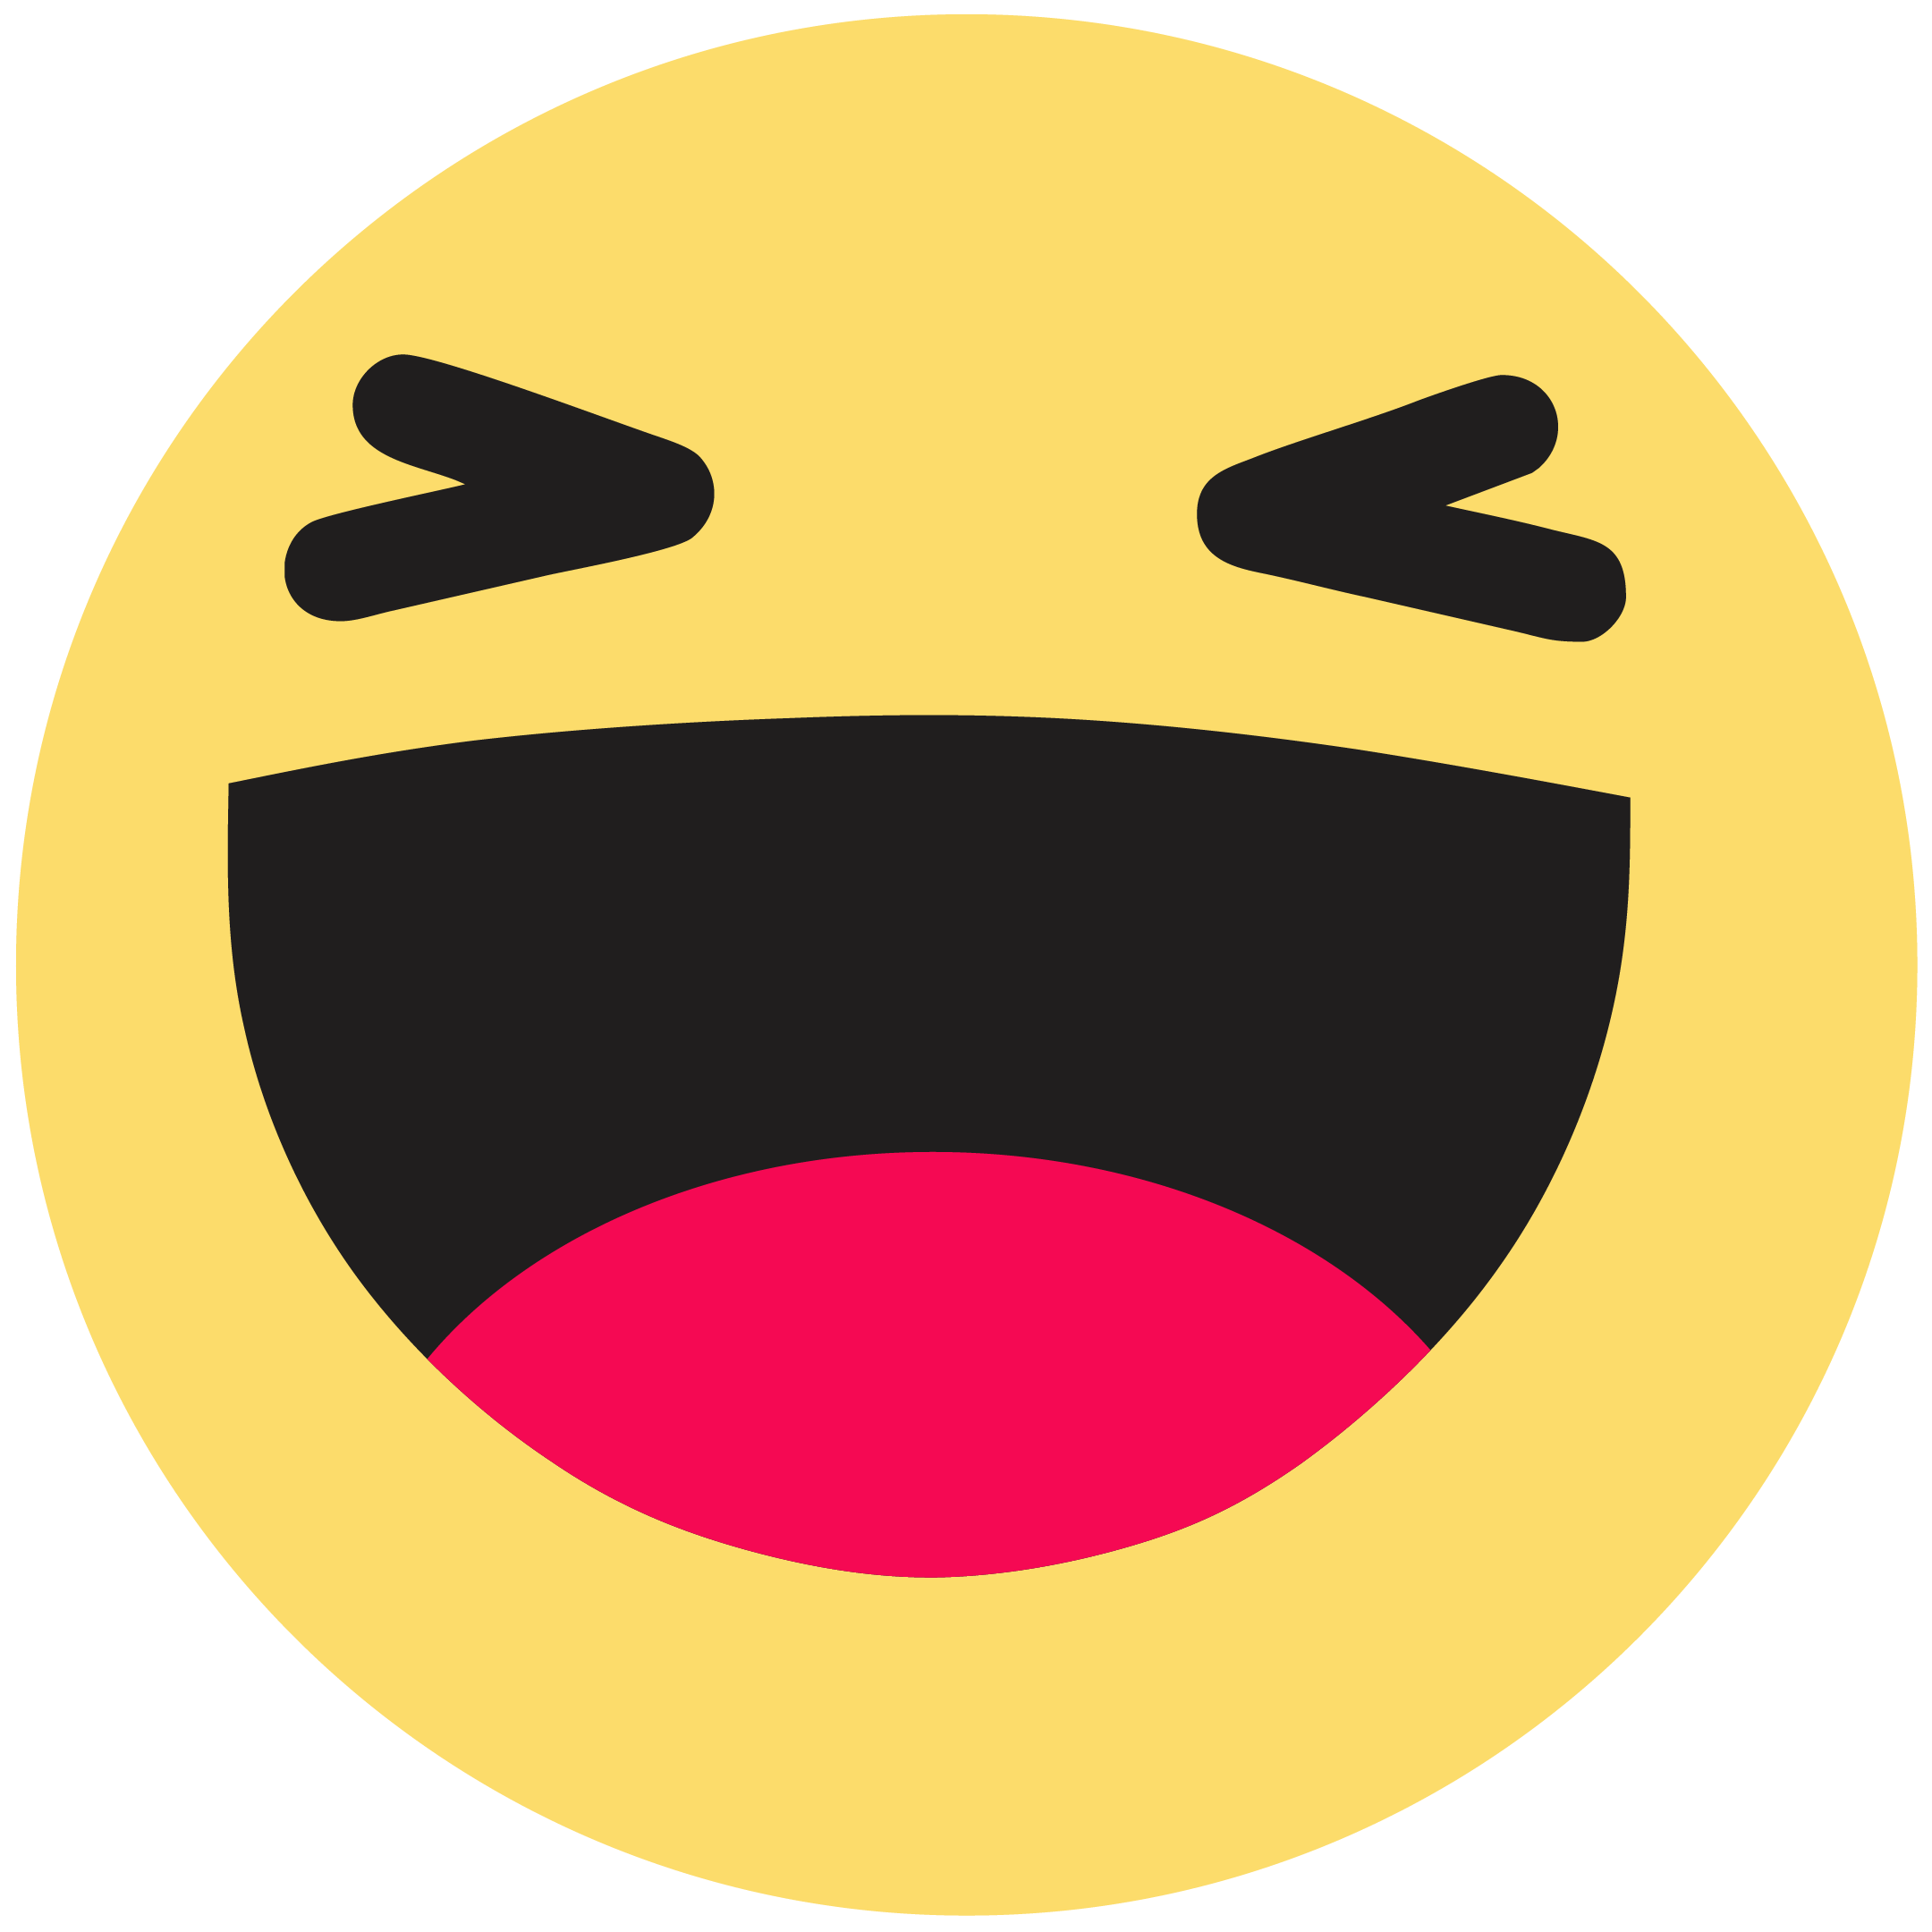 Emoticon Like Button Haha Facebook Emoji PNG Image